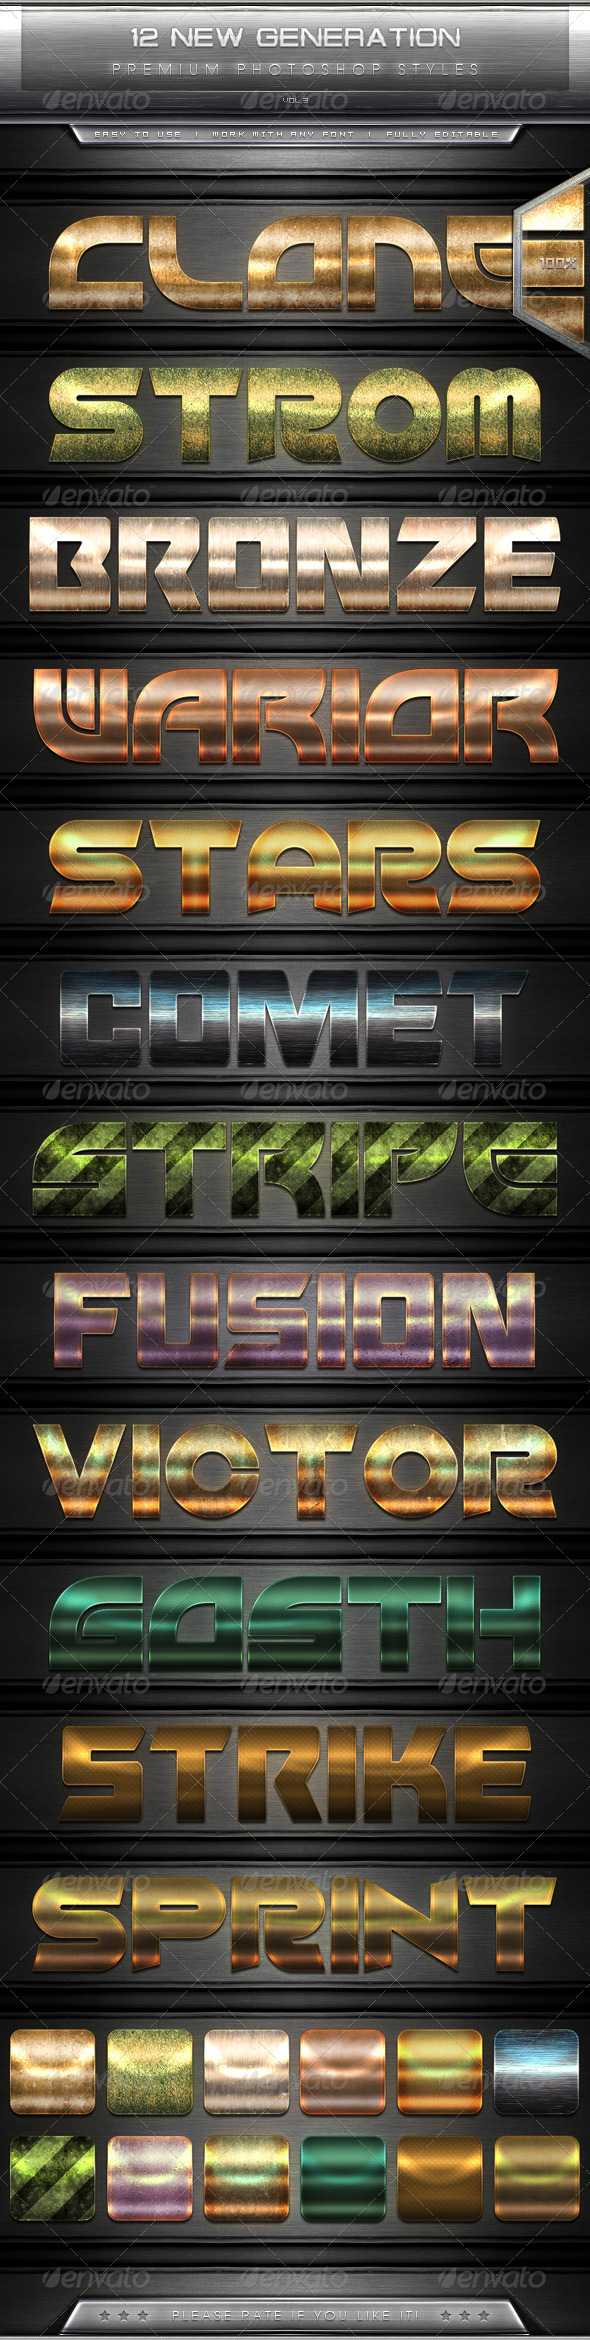 GraphicRiver 12 New Generation Text Effect Styles Vol.3 7663035